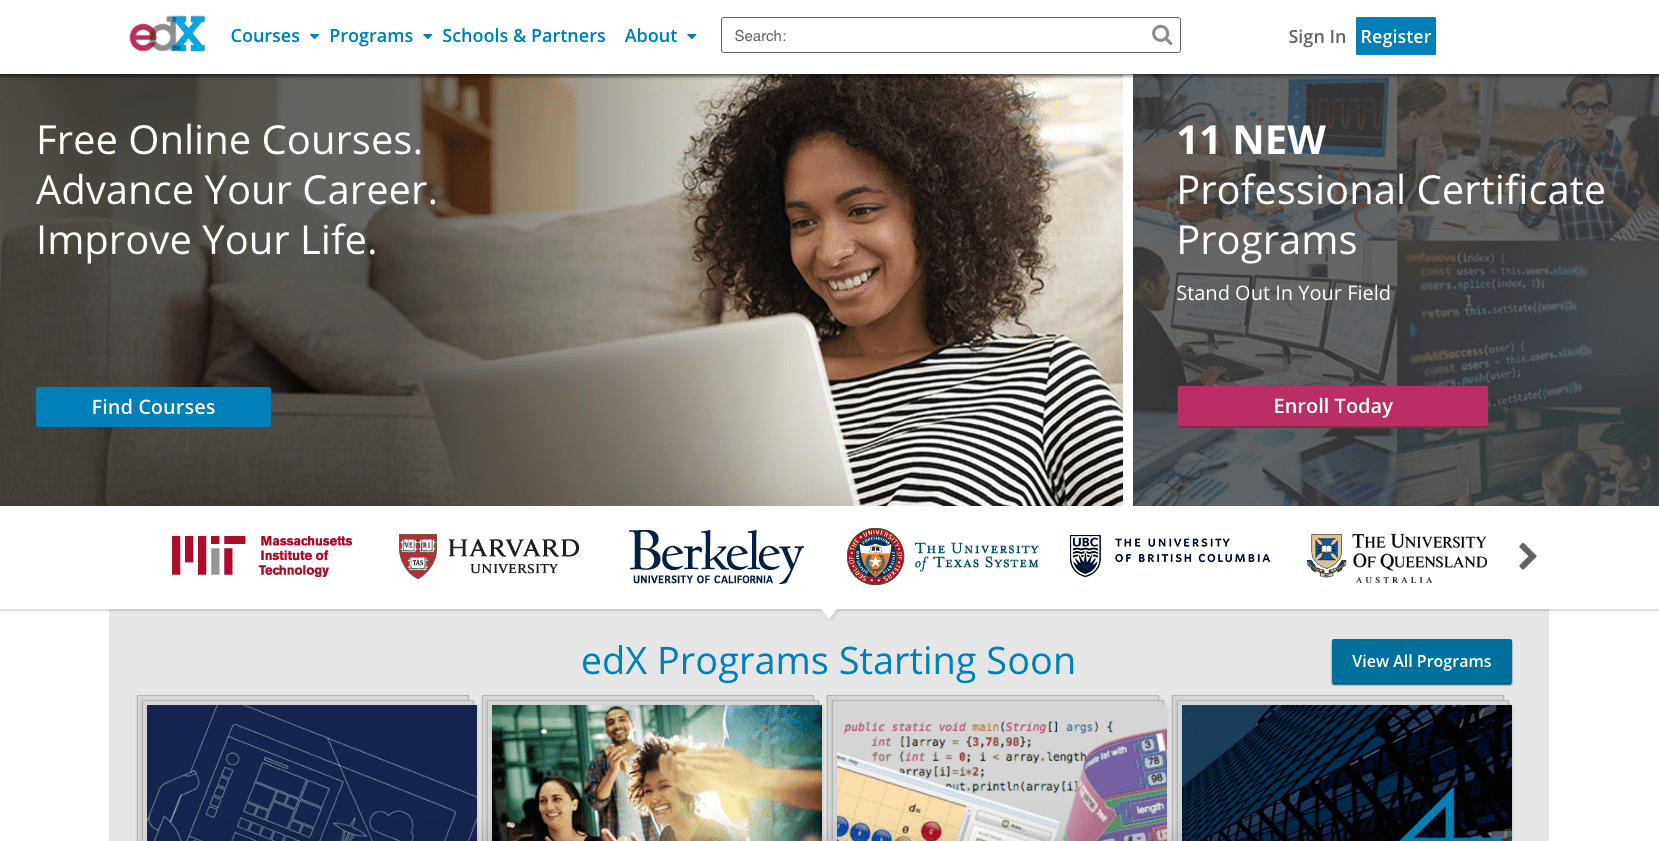 10 Educational Websites for Taking Online Courses